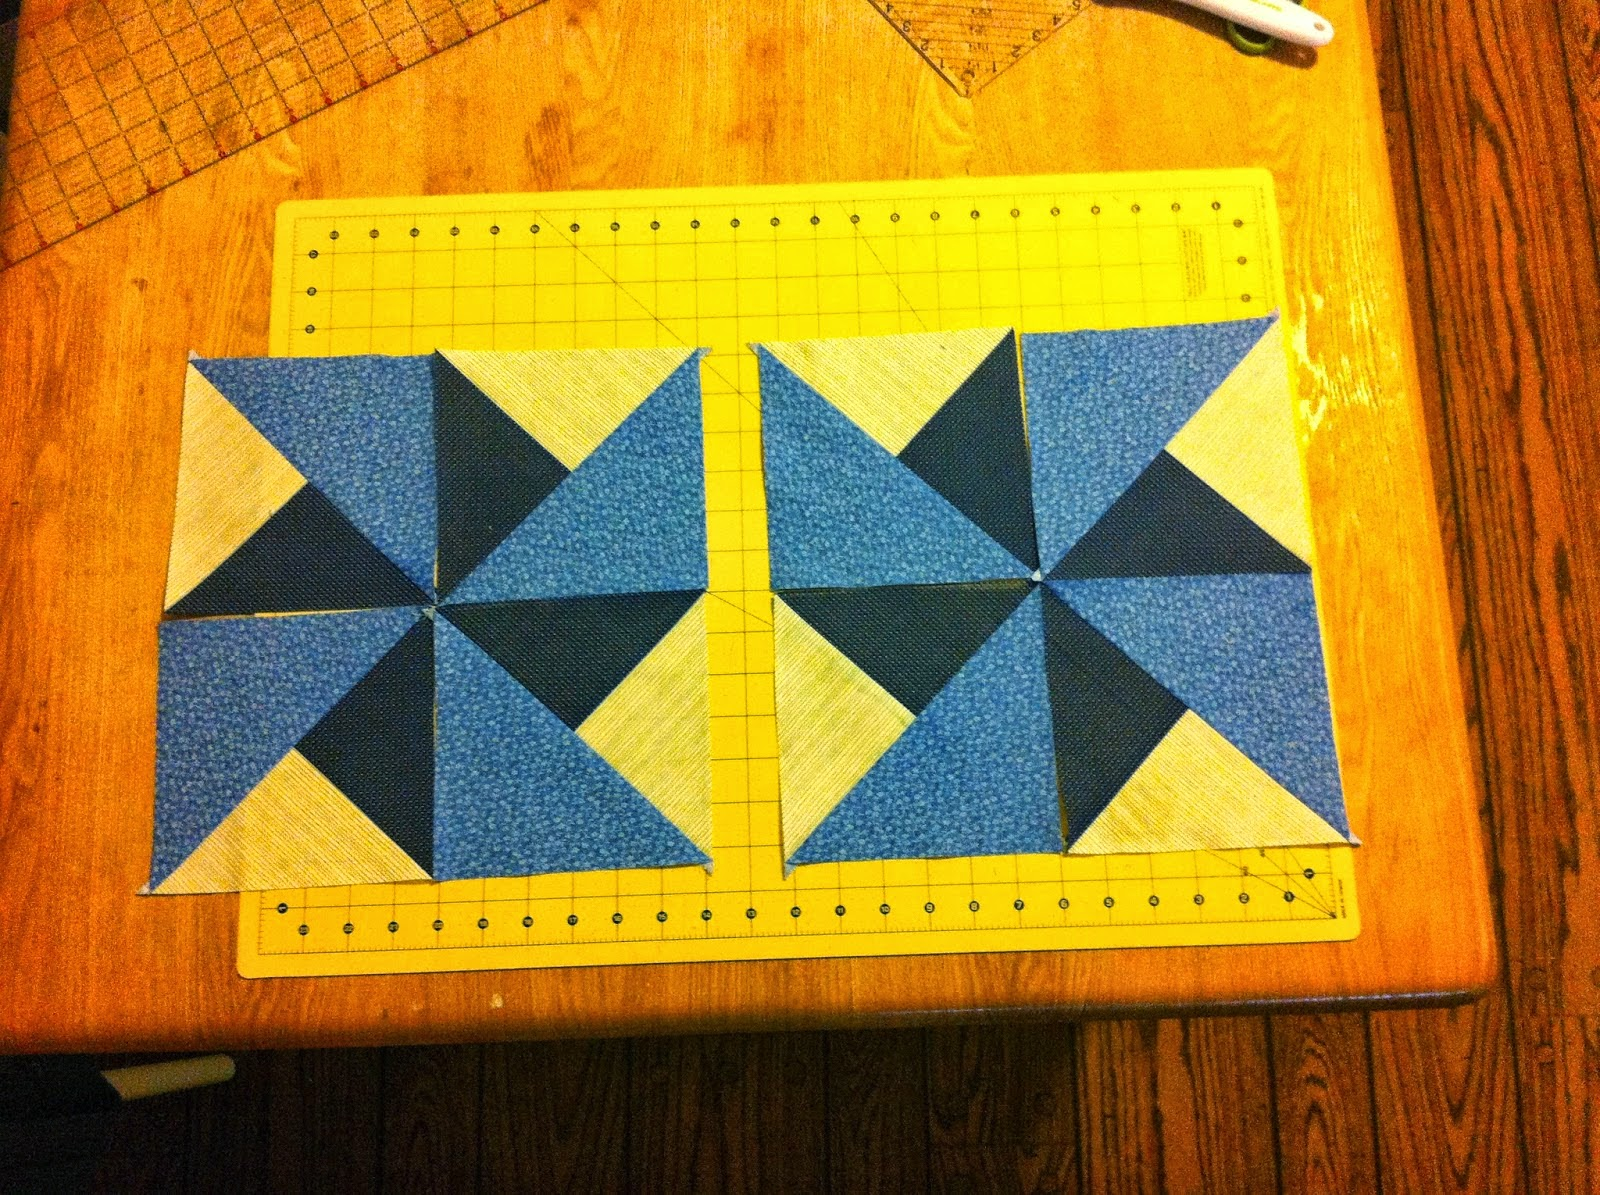 http://sewpreetiquilts.blogspot.com/2014/04/four-patch-hst-boston-block-tutorial.html